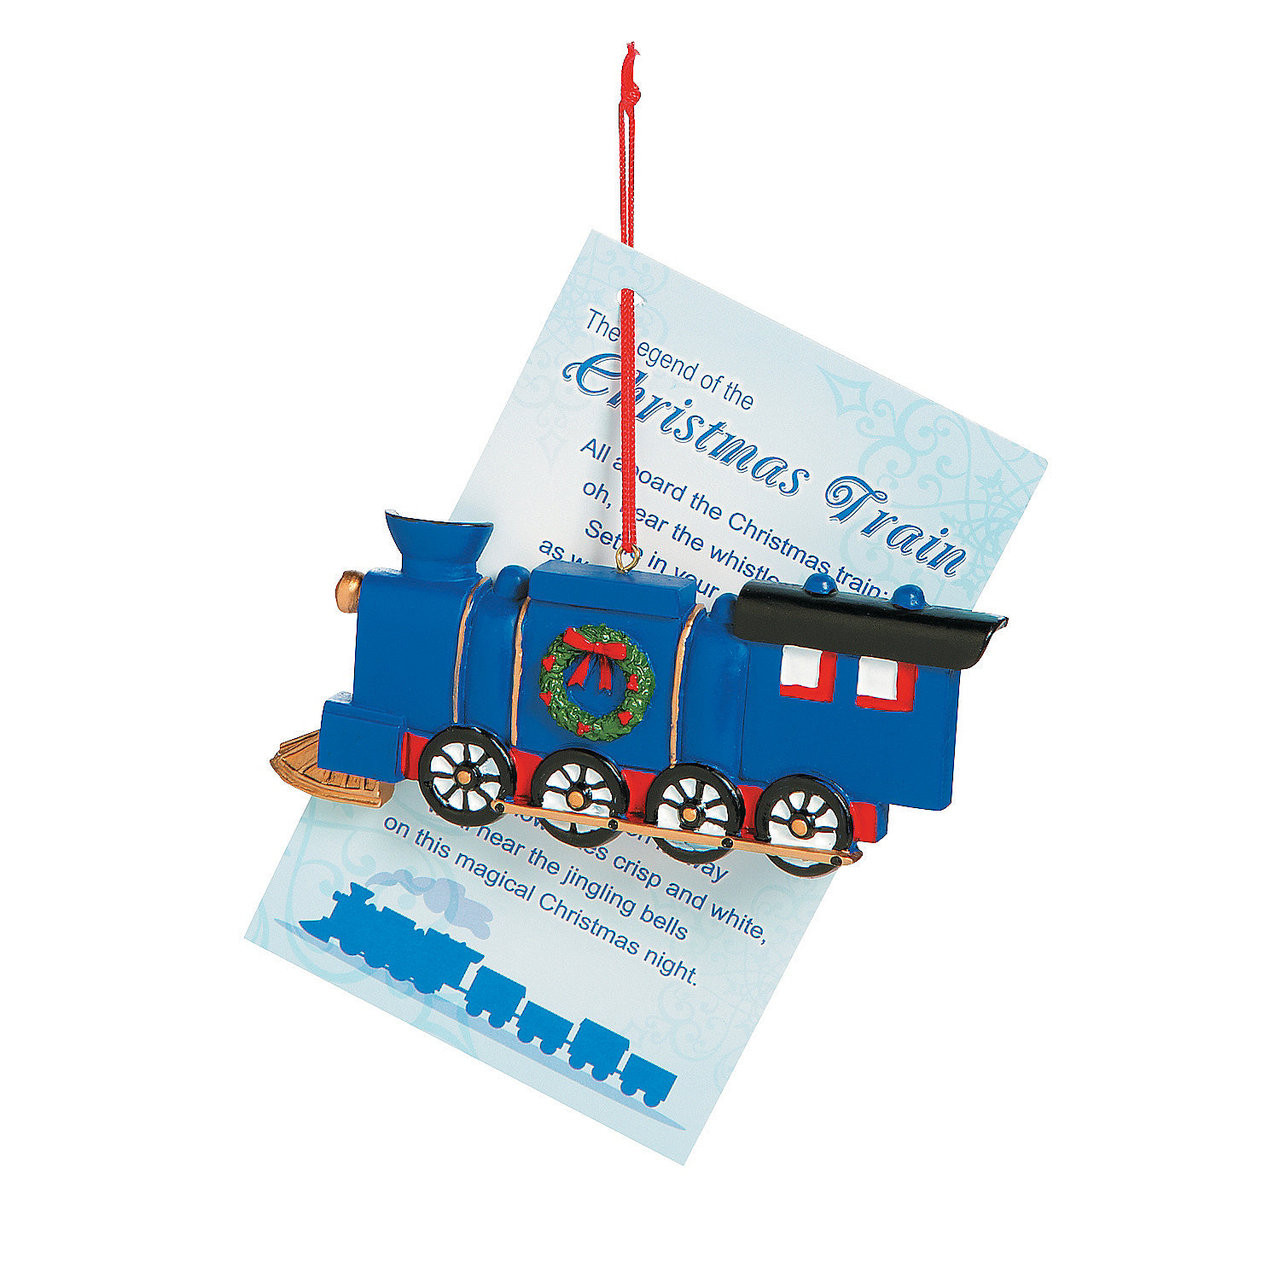 Chuggington Wall Stickers Legend Of The Christmas Train Ornaments